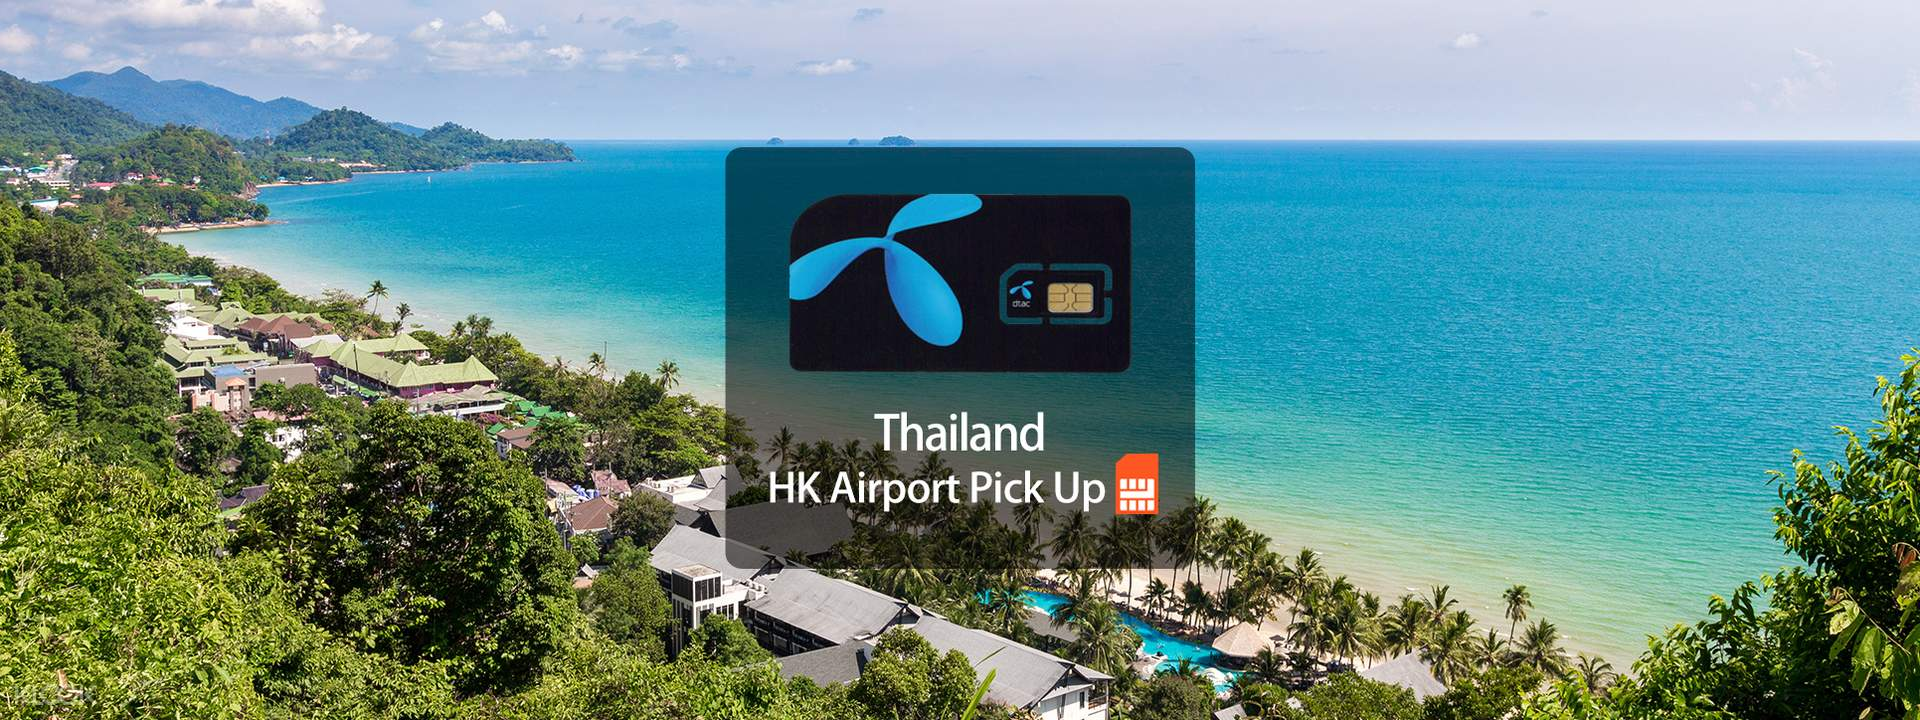 4G SIM Card (HK Airport Pick Up) for Thailand from Happy